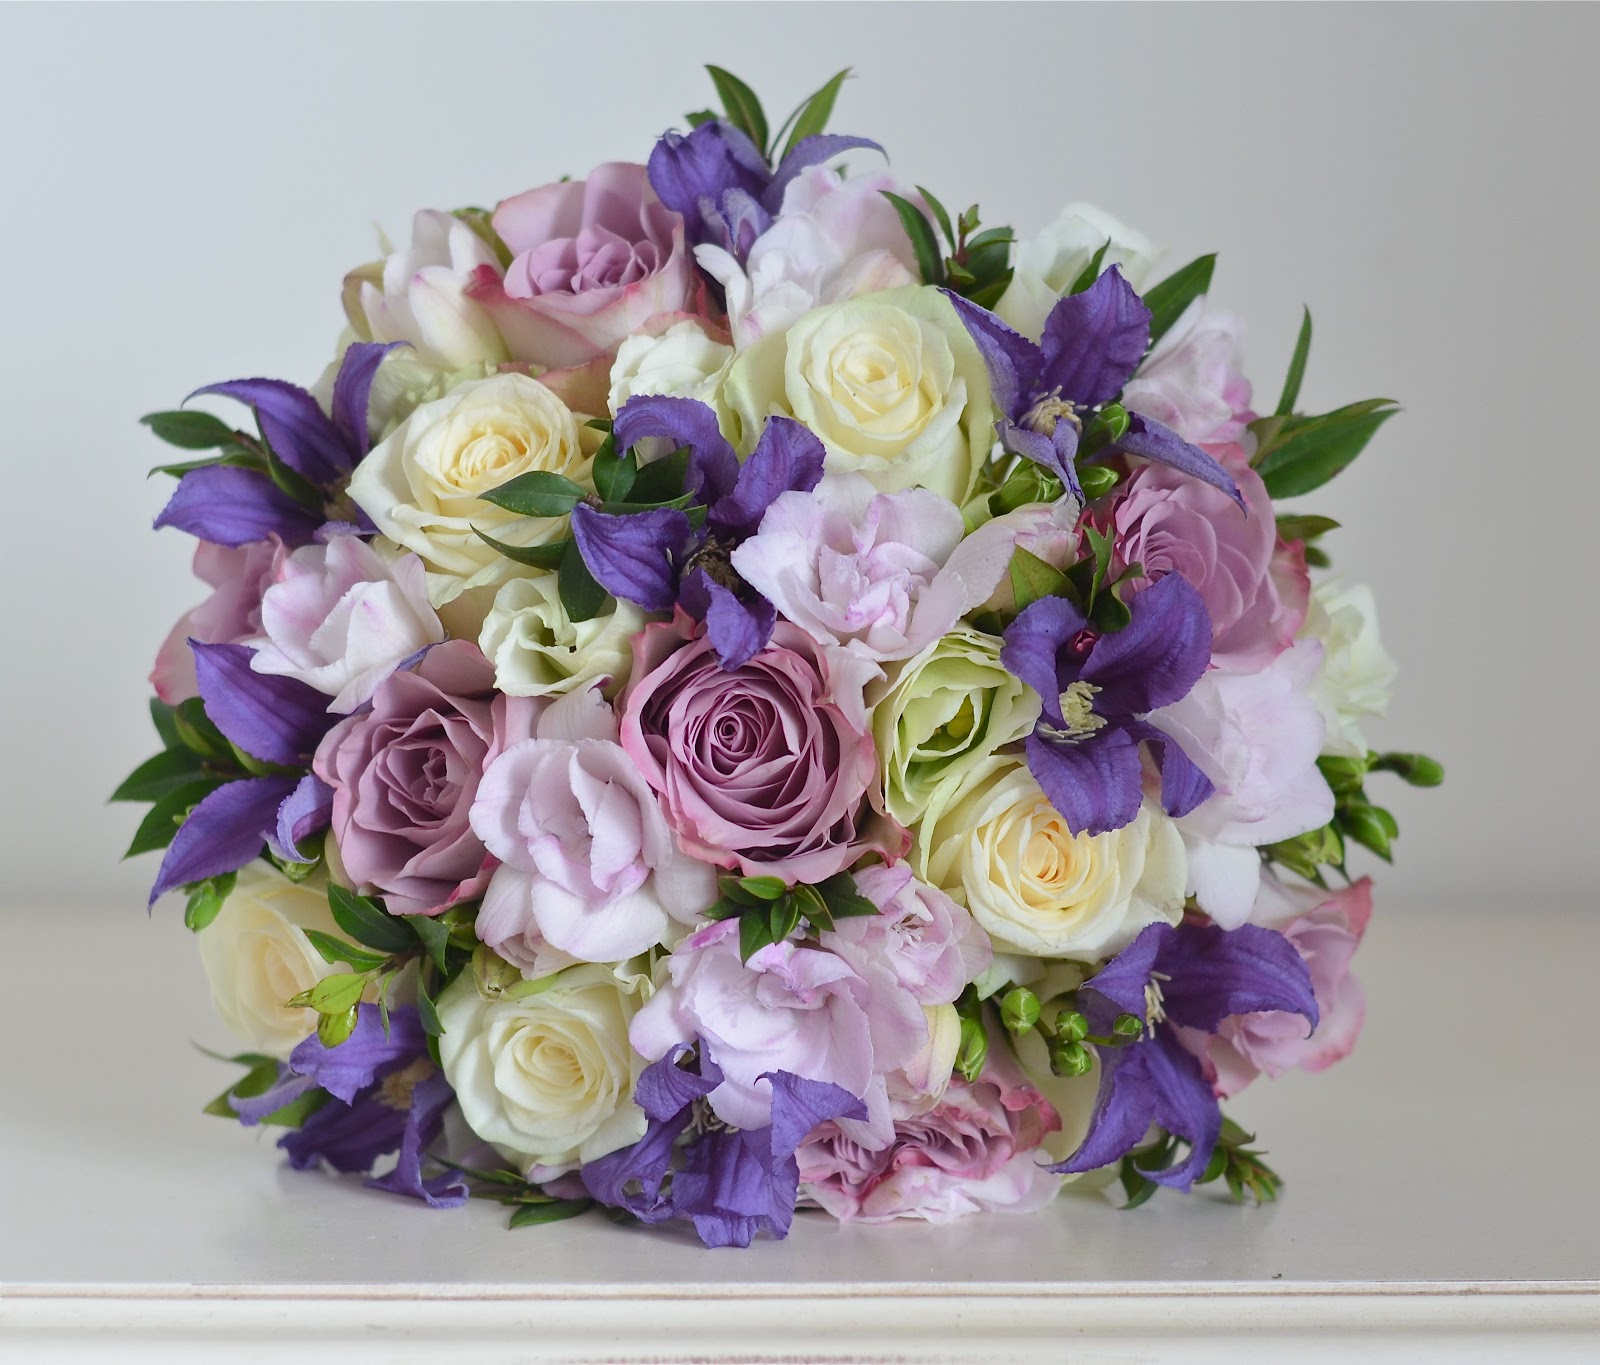 Wedding Flowers Blog Sues Wedding Flowersthe Shoe Exton